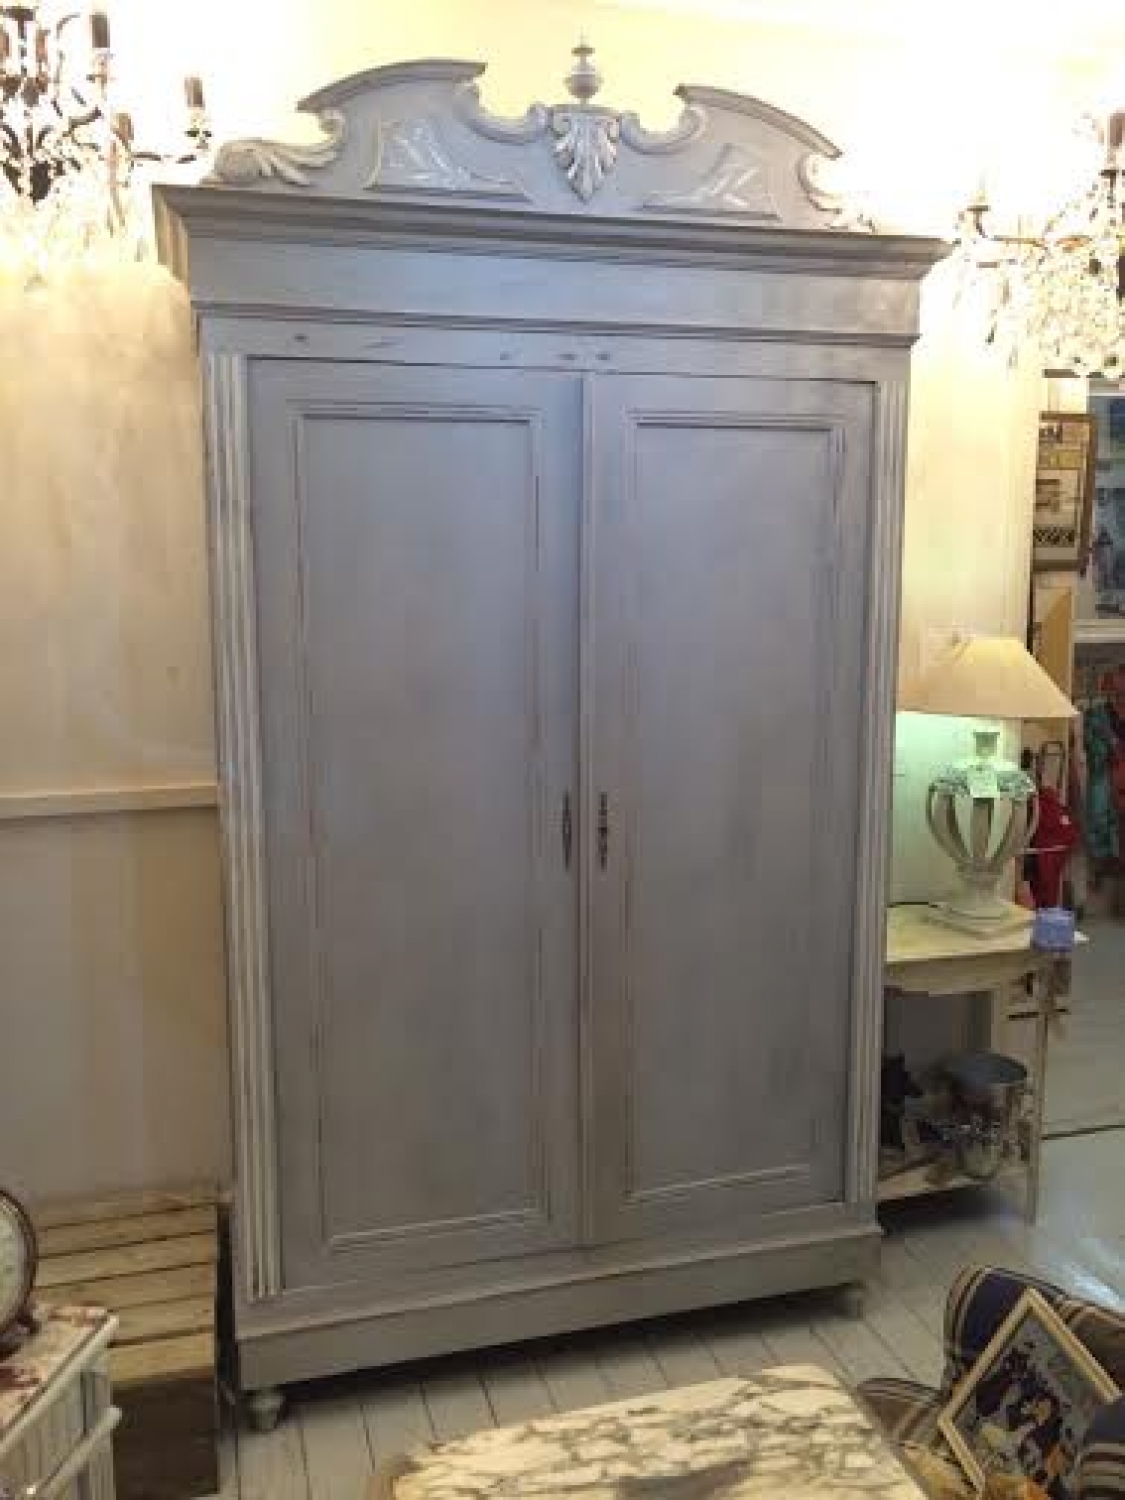 Antique C1900 French painted wardrobe